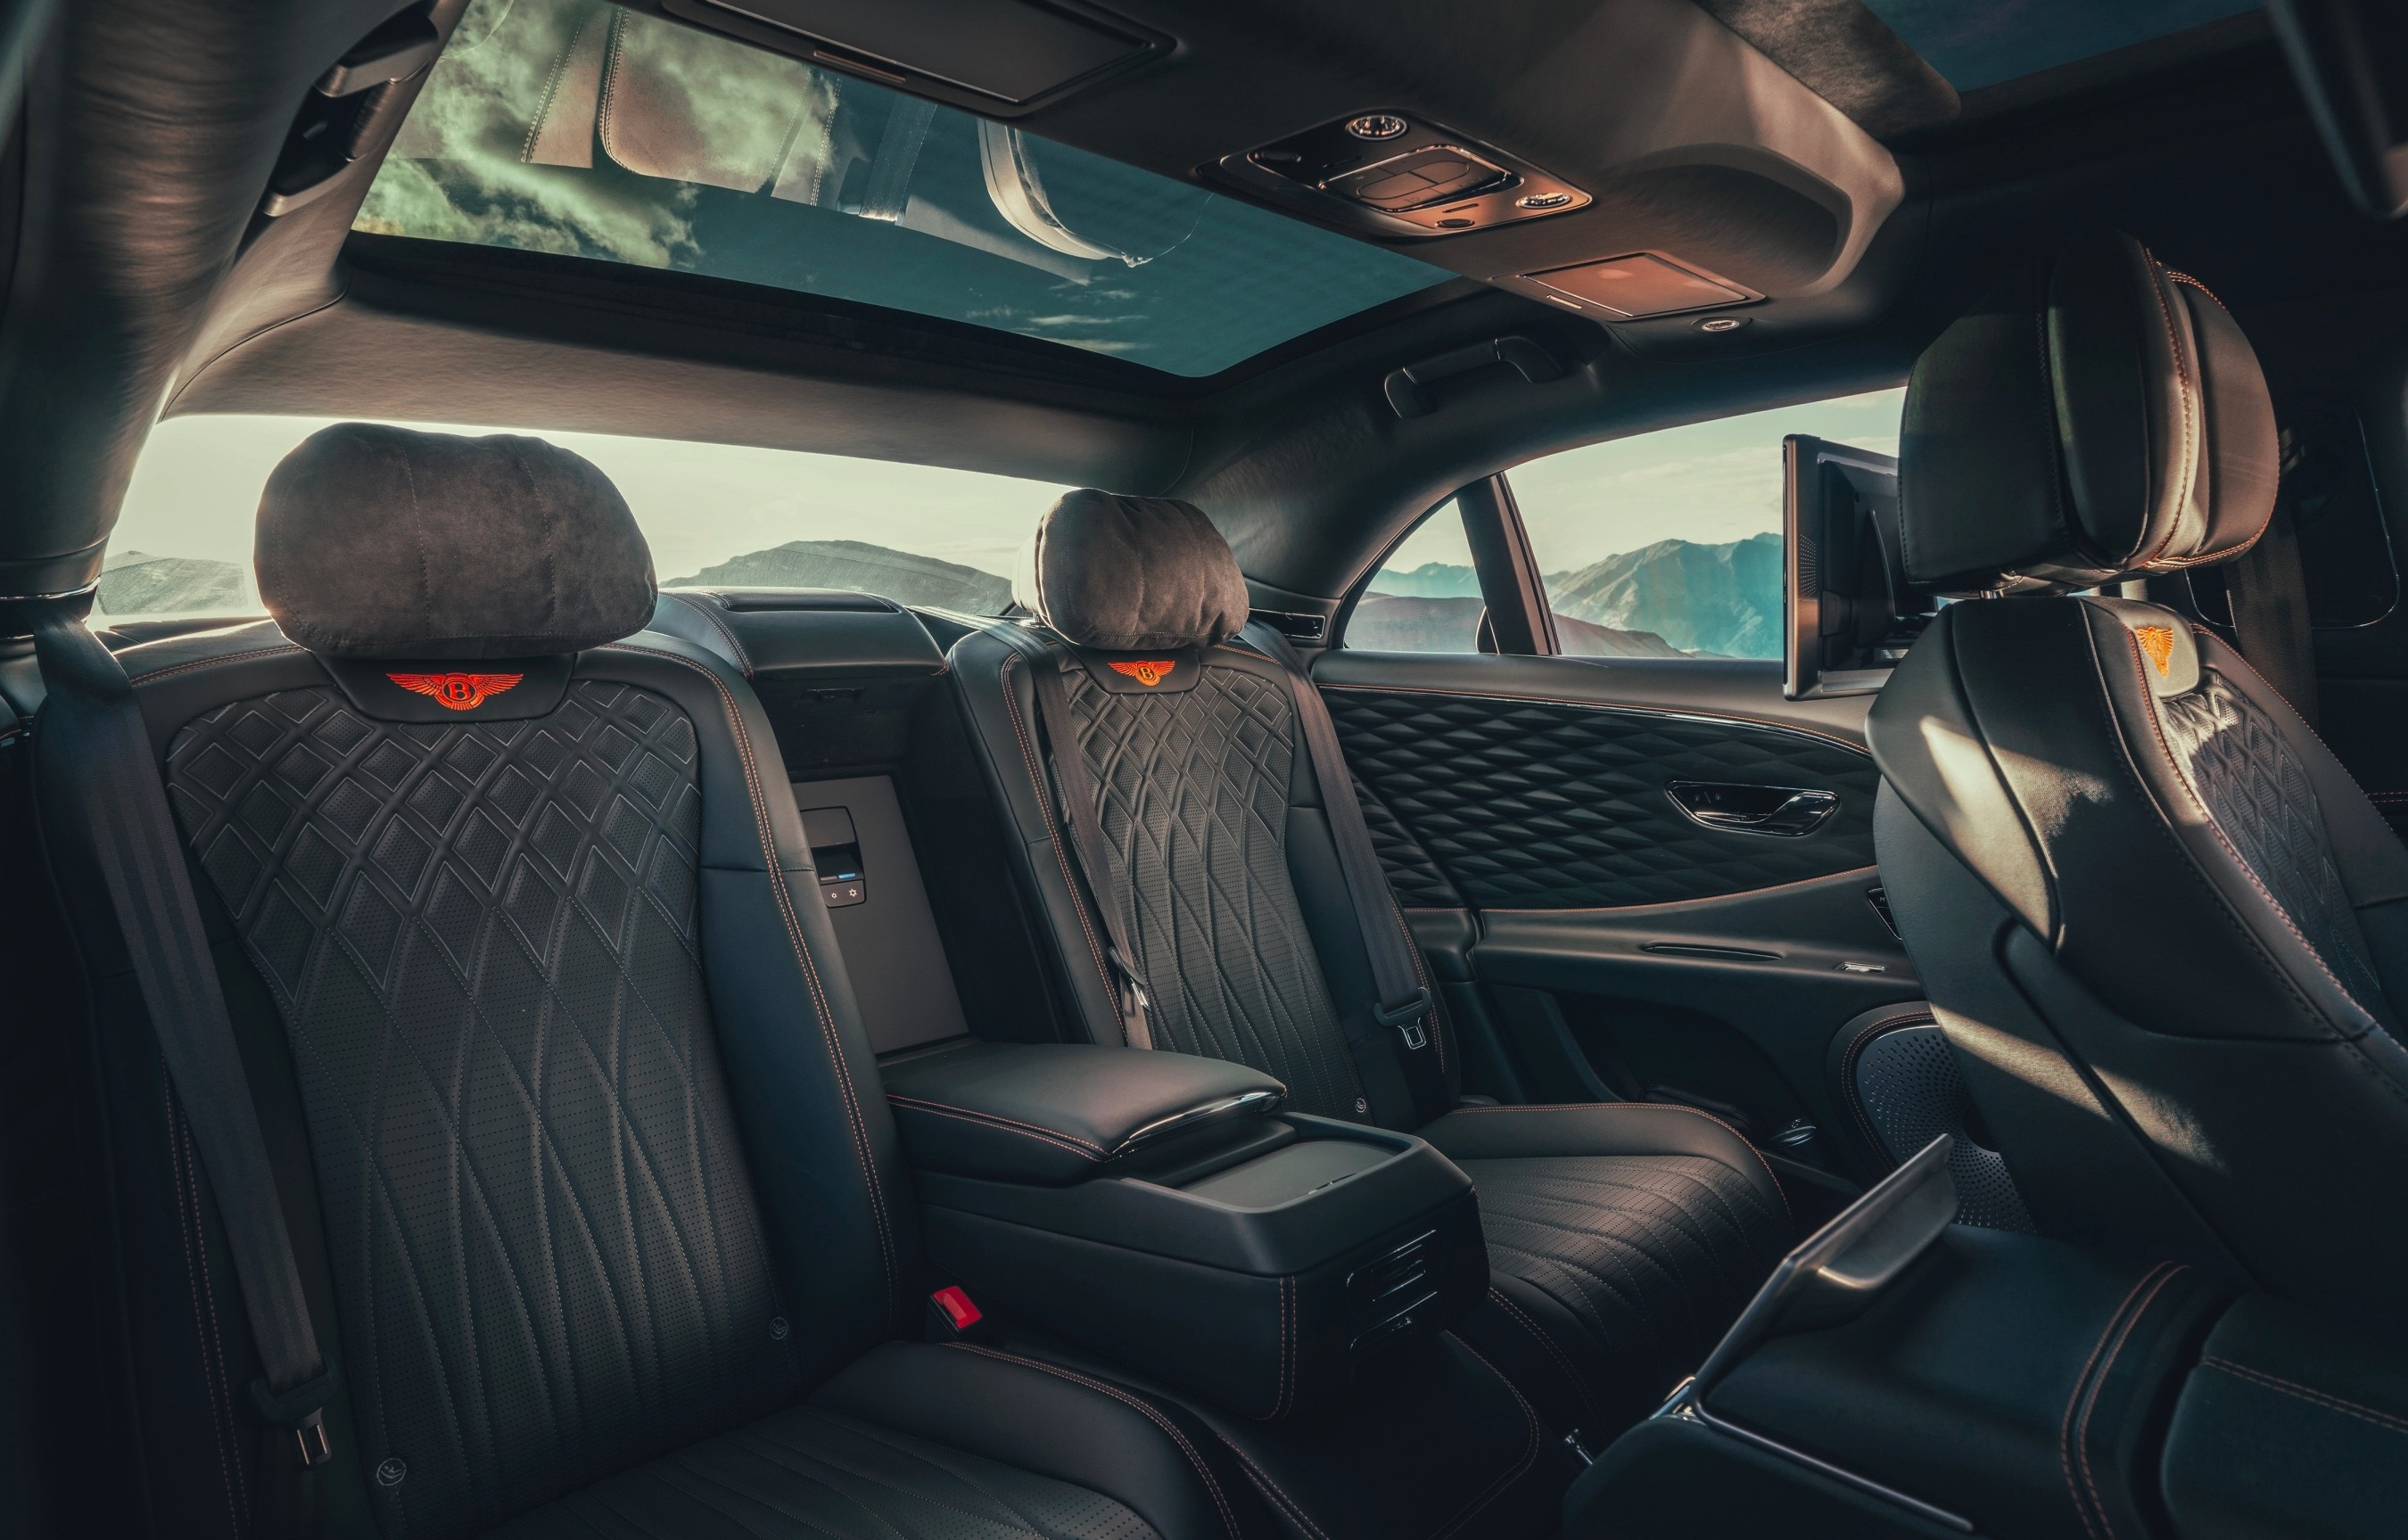 Interior of the 2020 Bentley Flying Spur